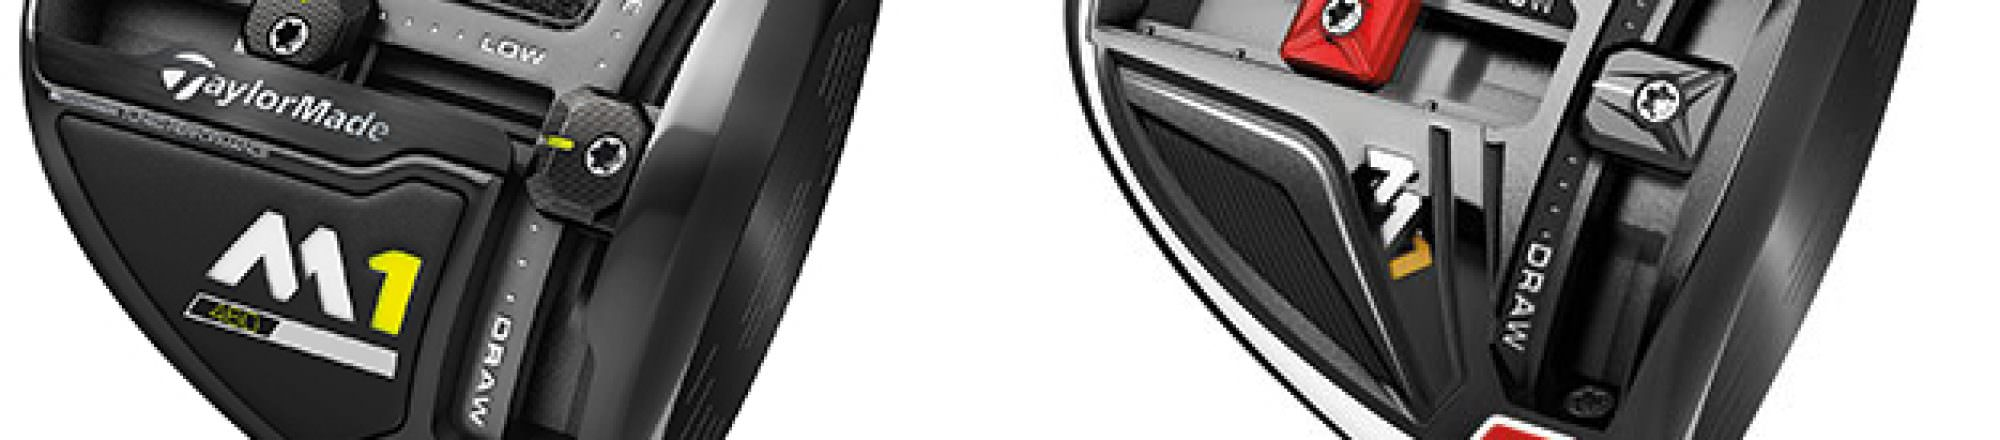 Equipment: TaylorMade 2017 M1 driver v TaylorMade 2016 M1 driver